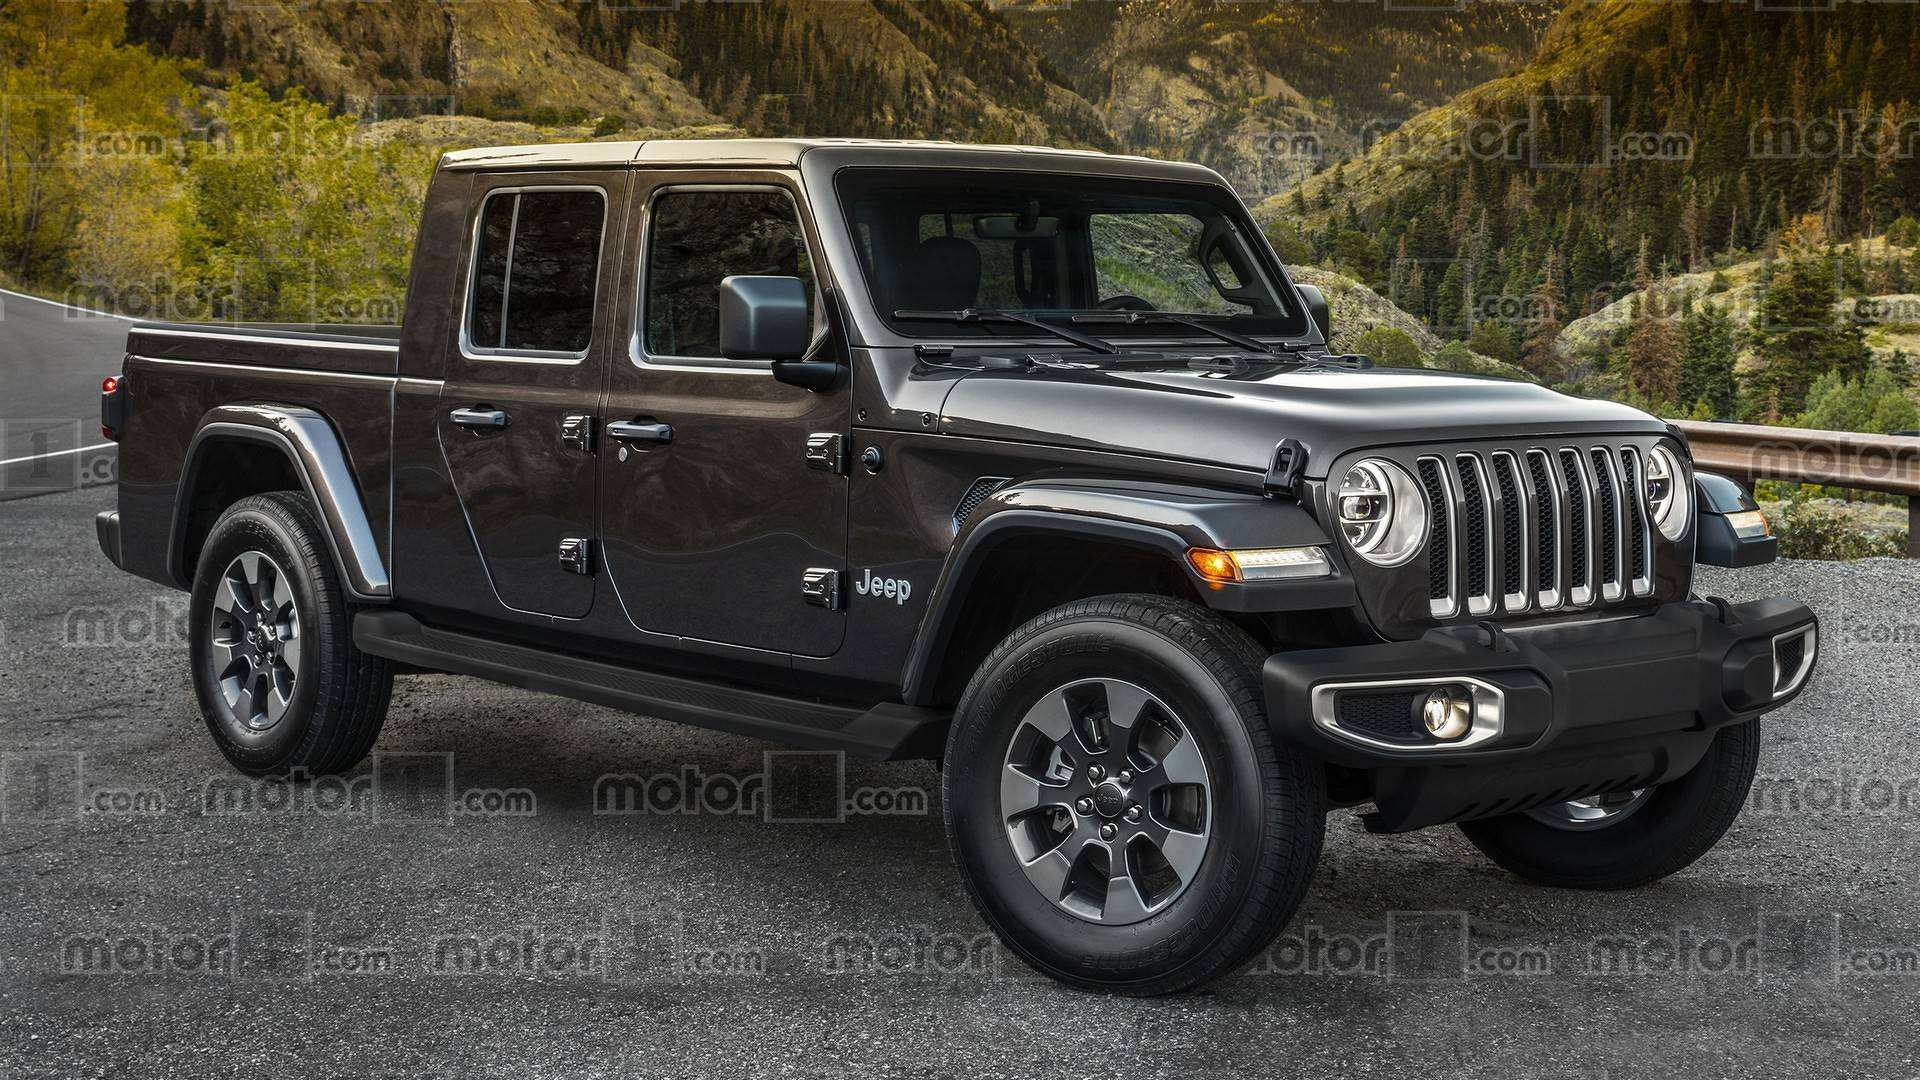 89 New 2019 Jeep Gladiator Price First Drive for 2019 Jeep Gladiator Price